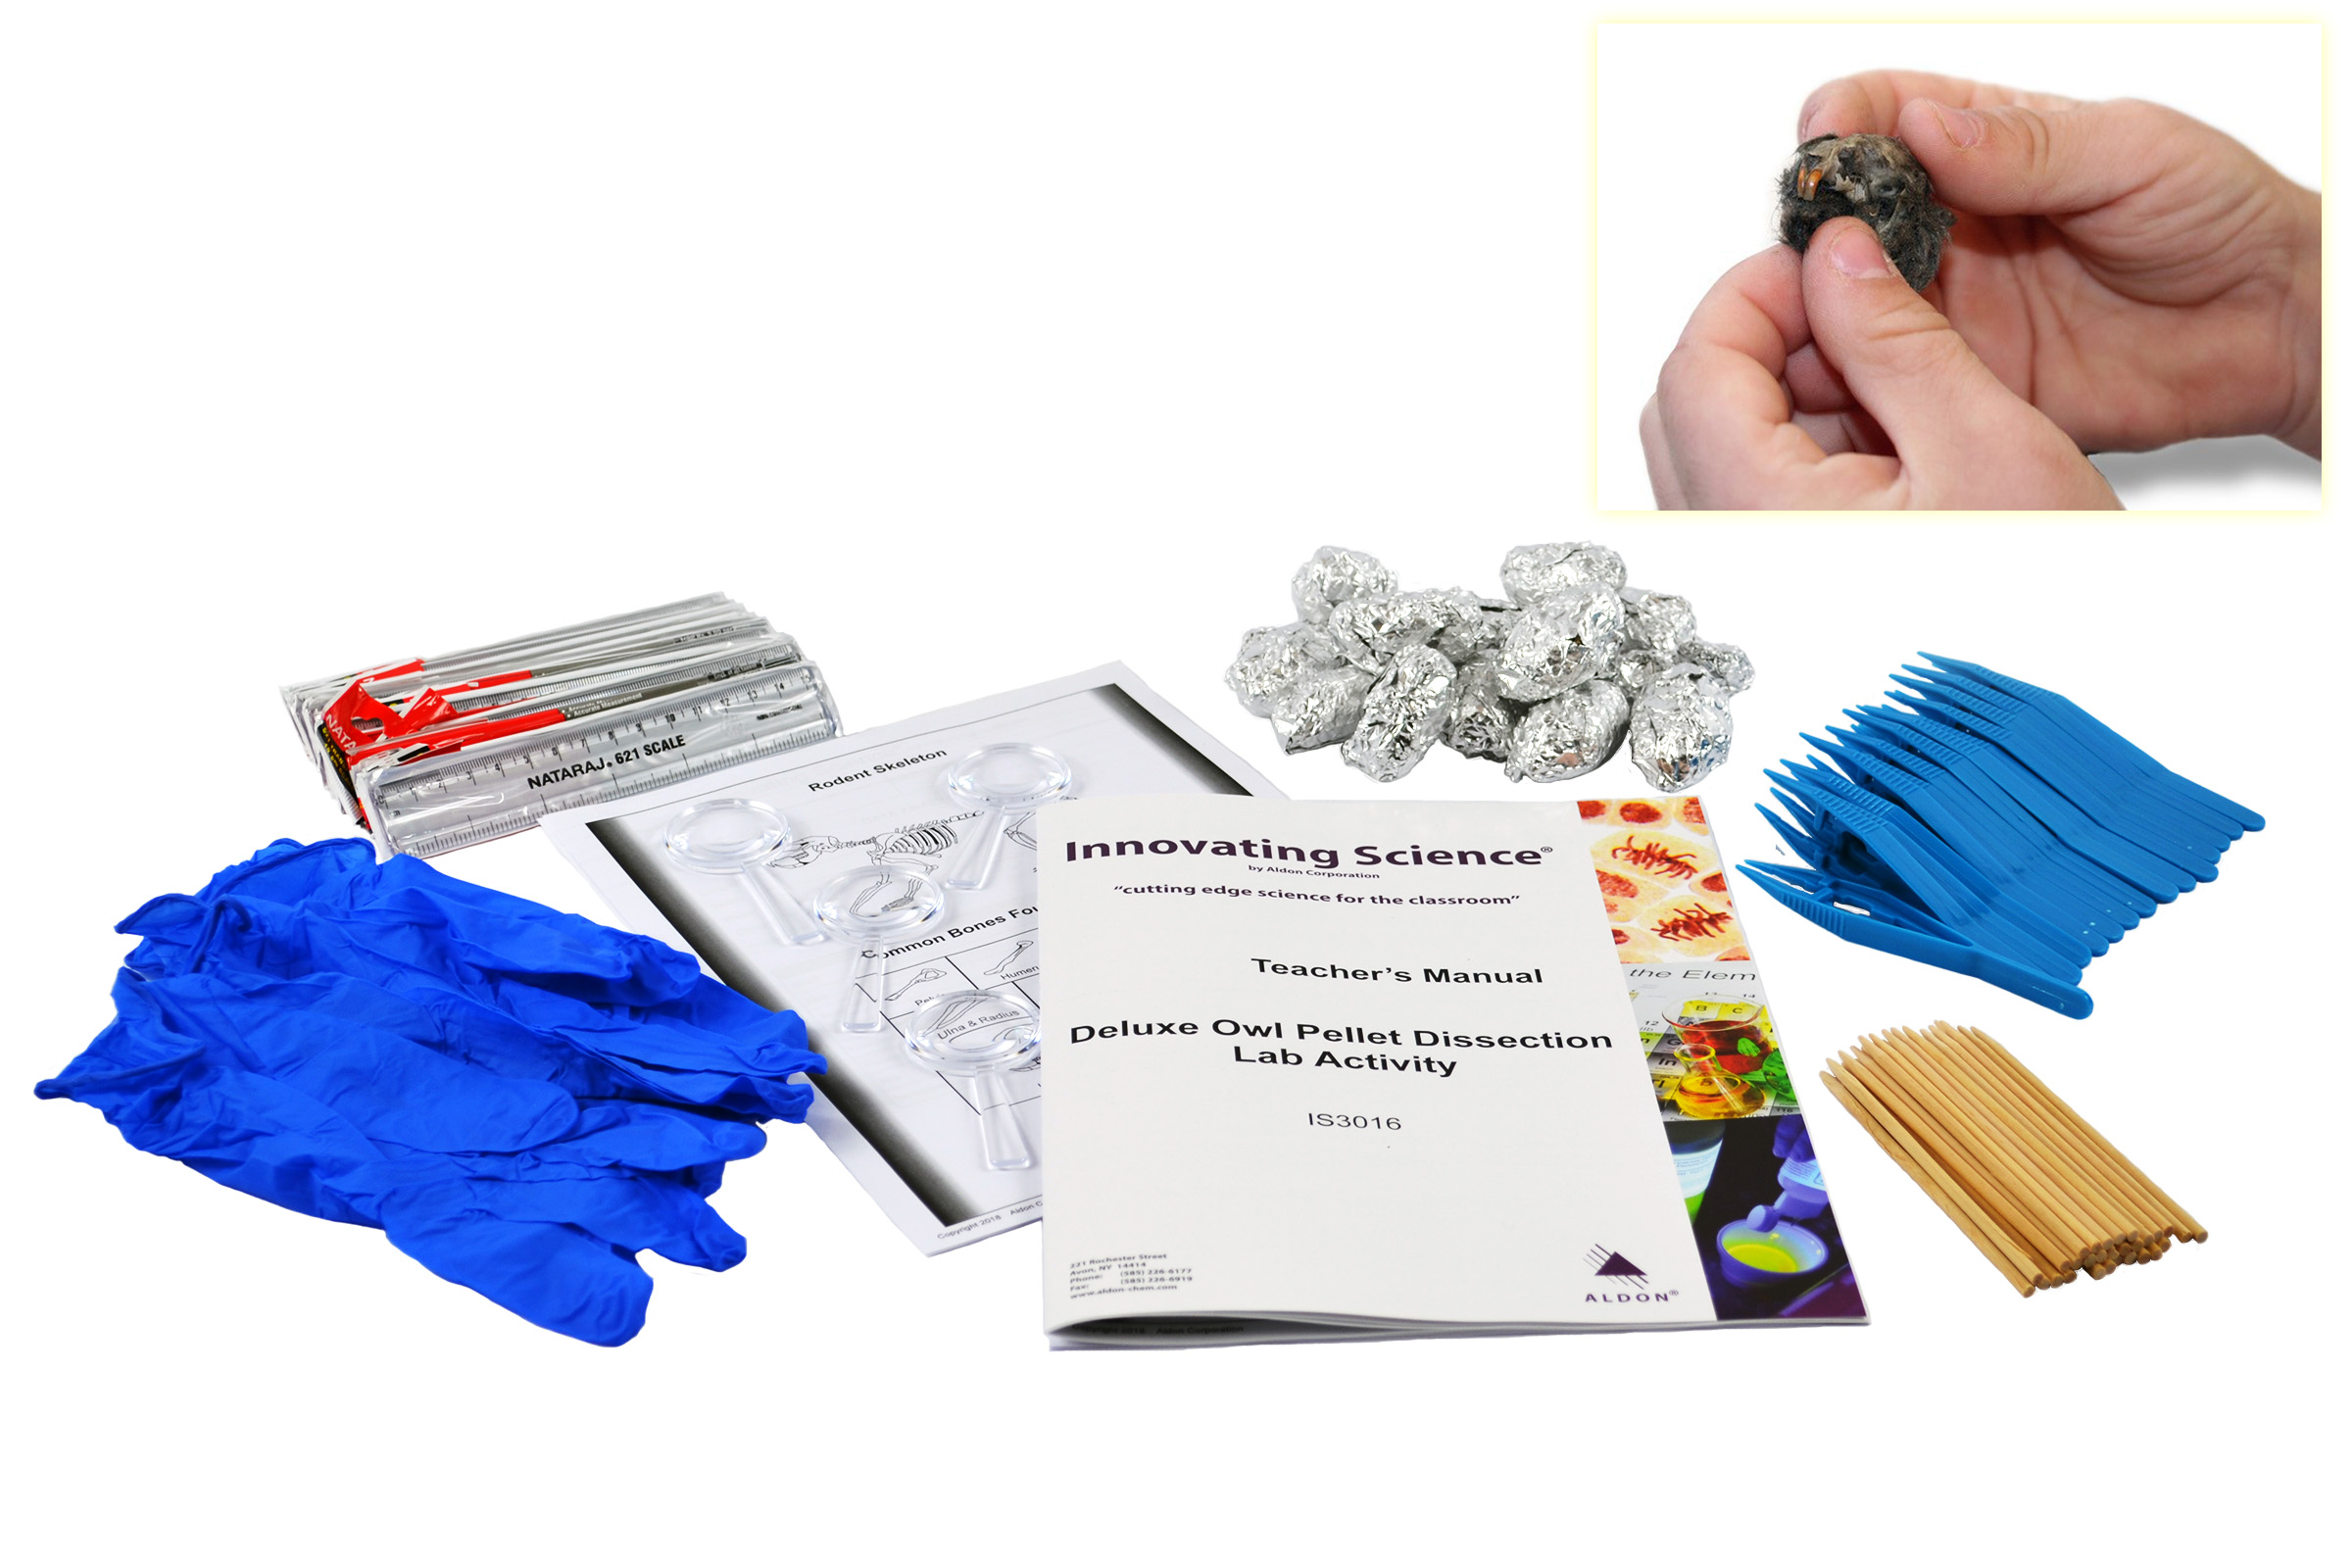 Deluxe Owl Pellet Dissection Lab Activity My Esteam Kits